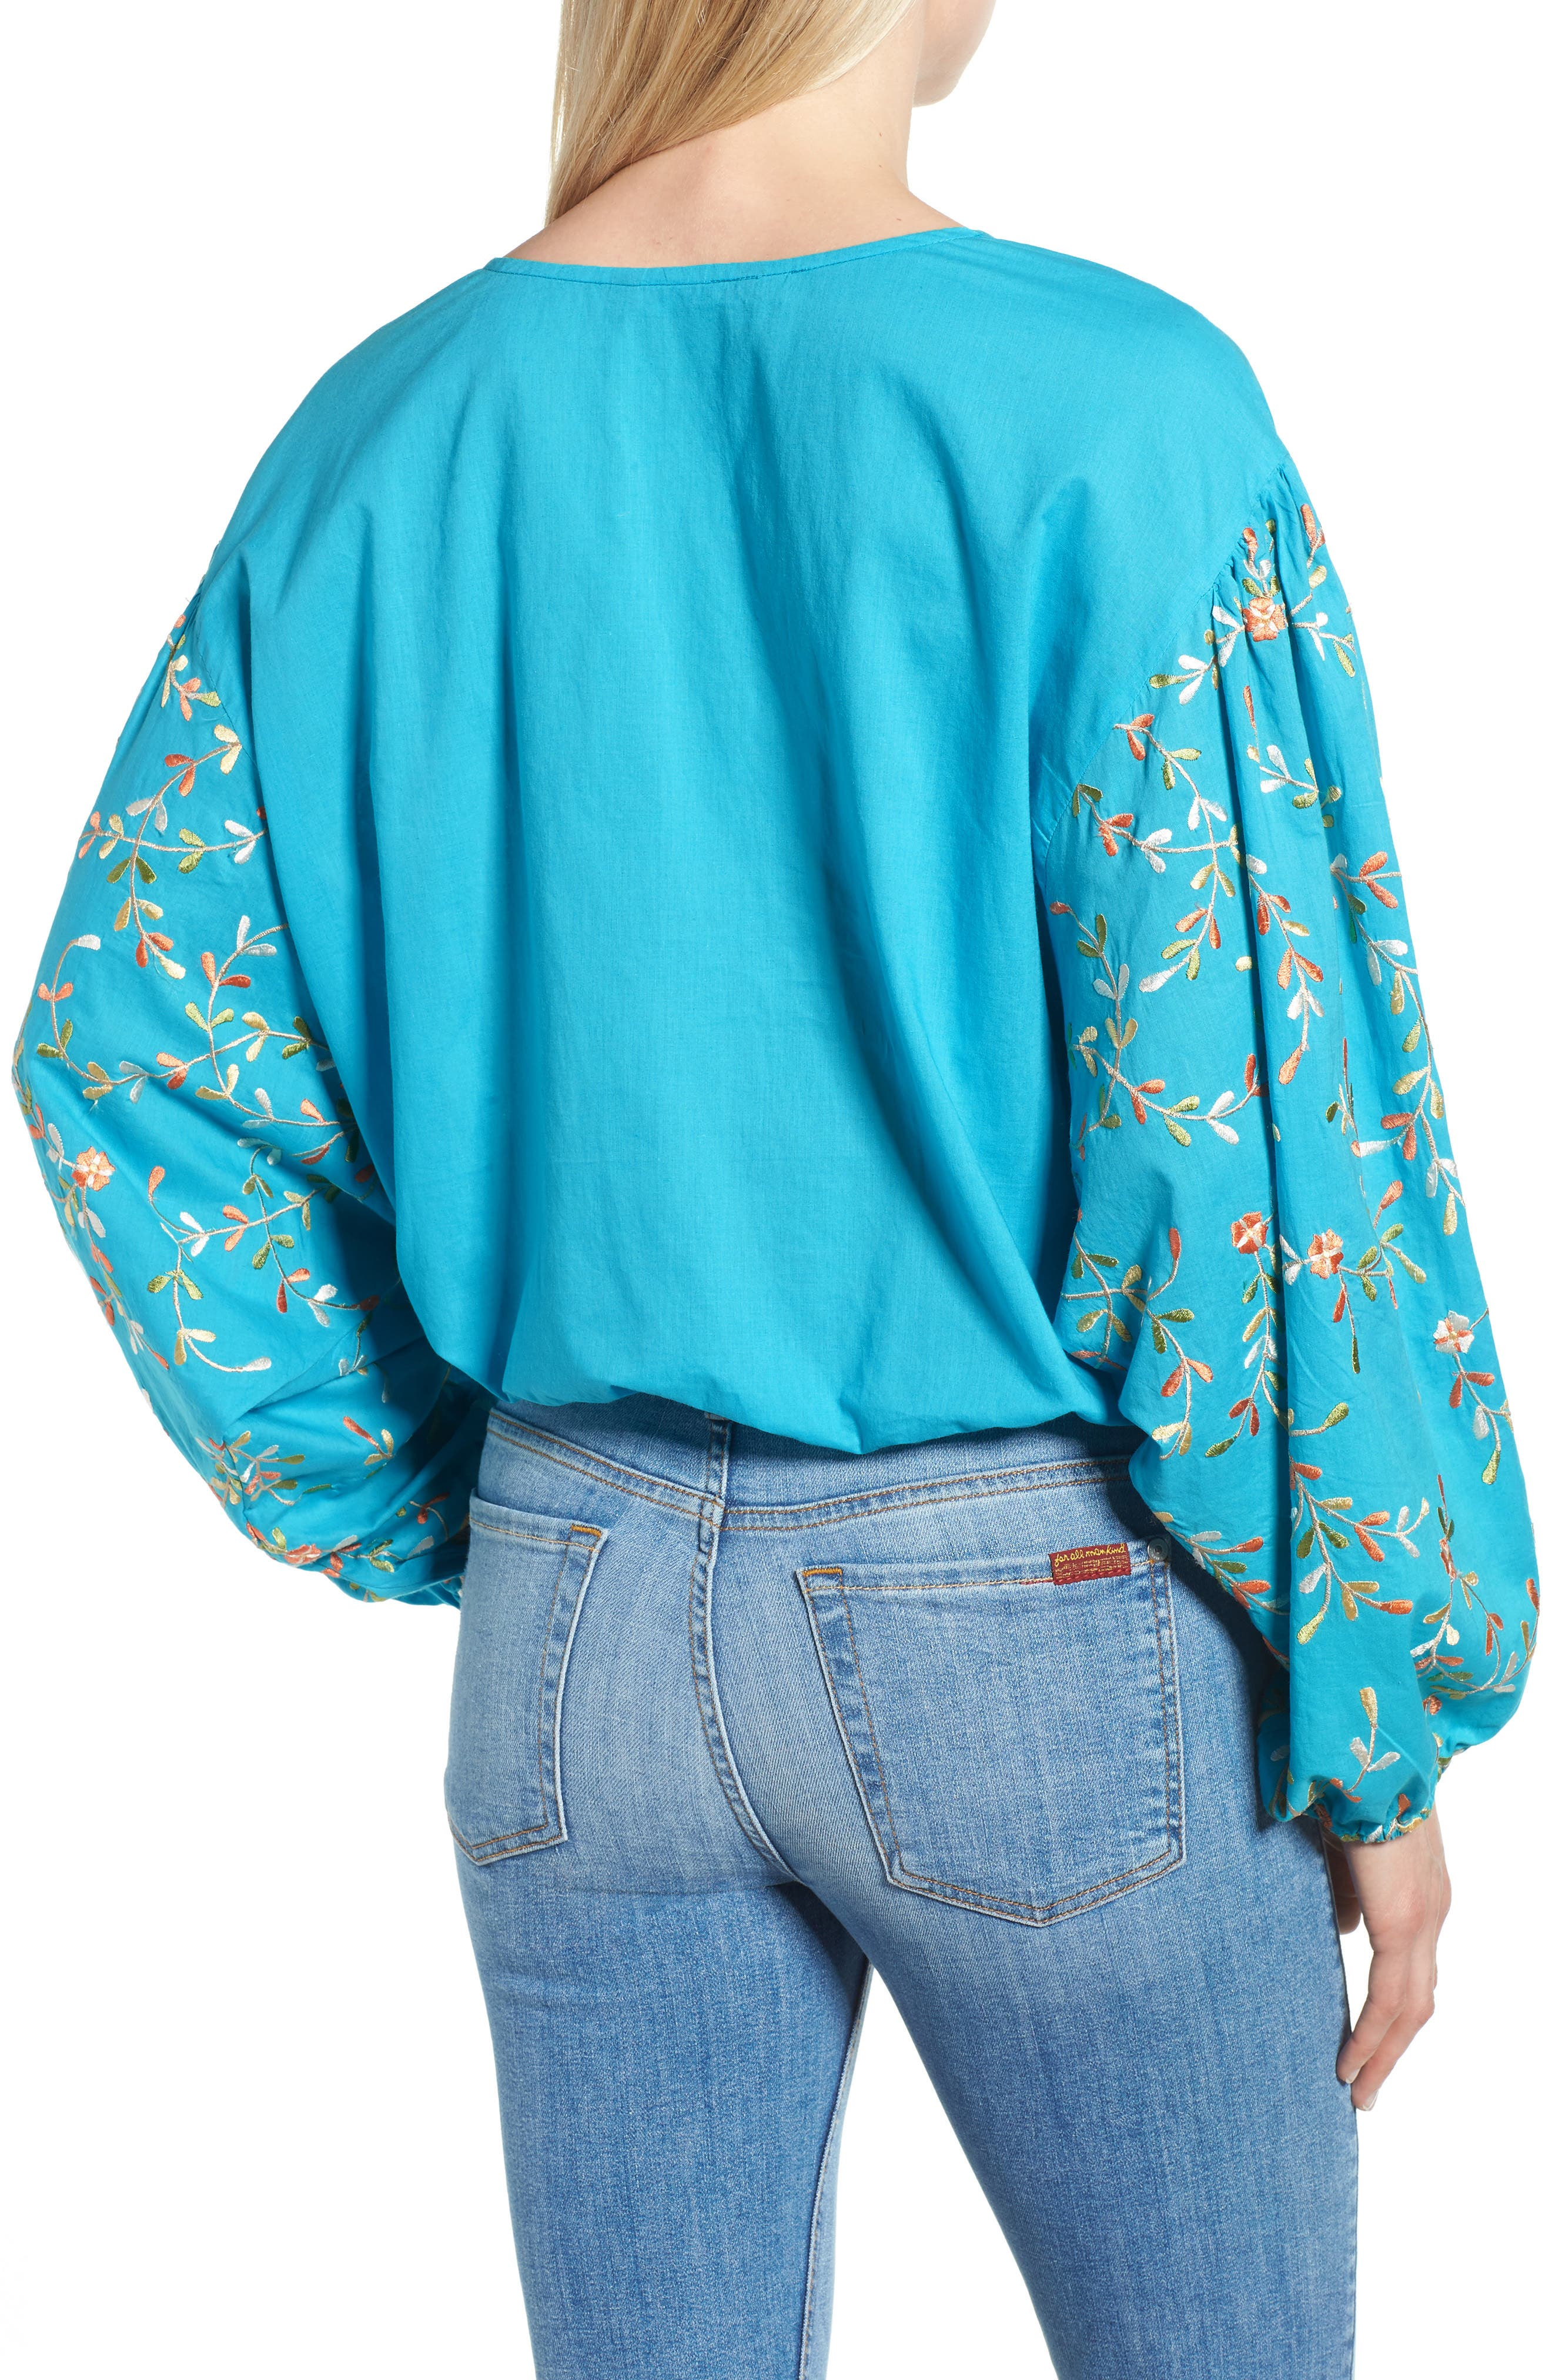 Coline Front Tie Embroidered Sleeve Blouse,                             Alternate thumbnail 2, color,                             440